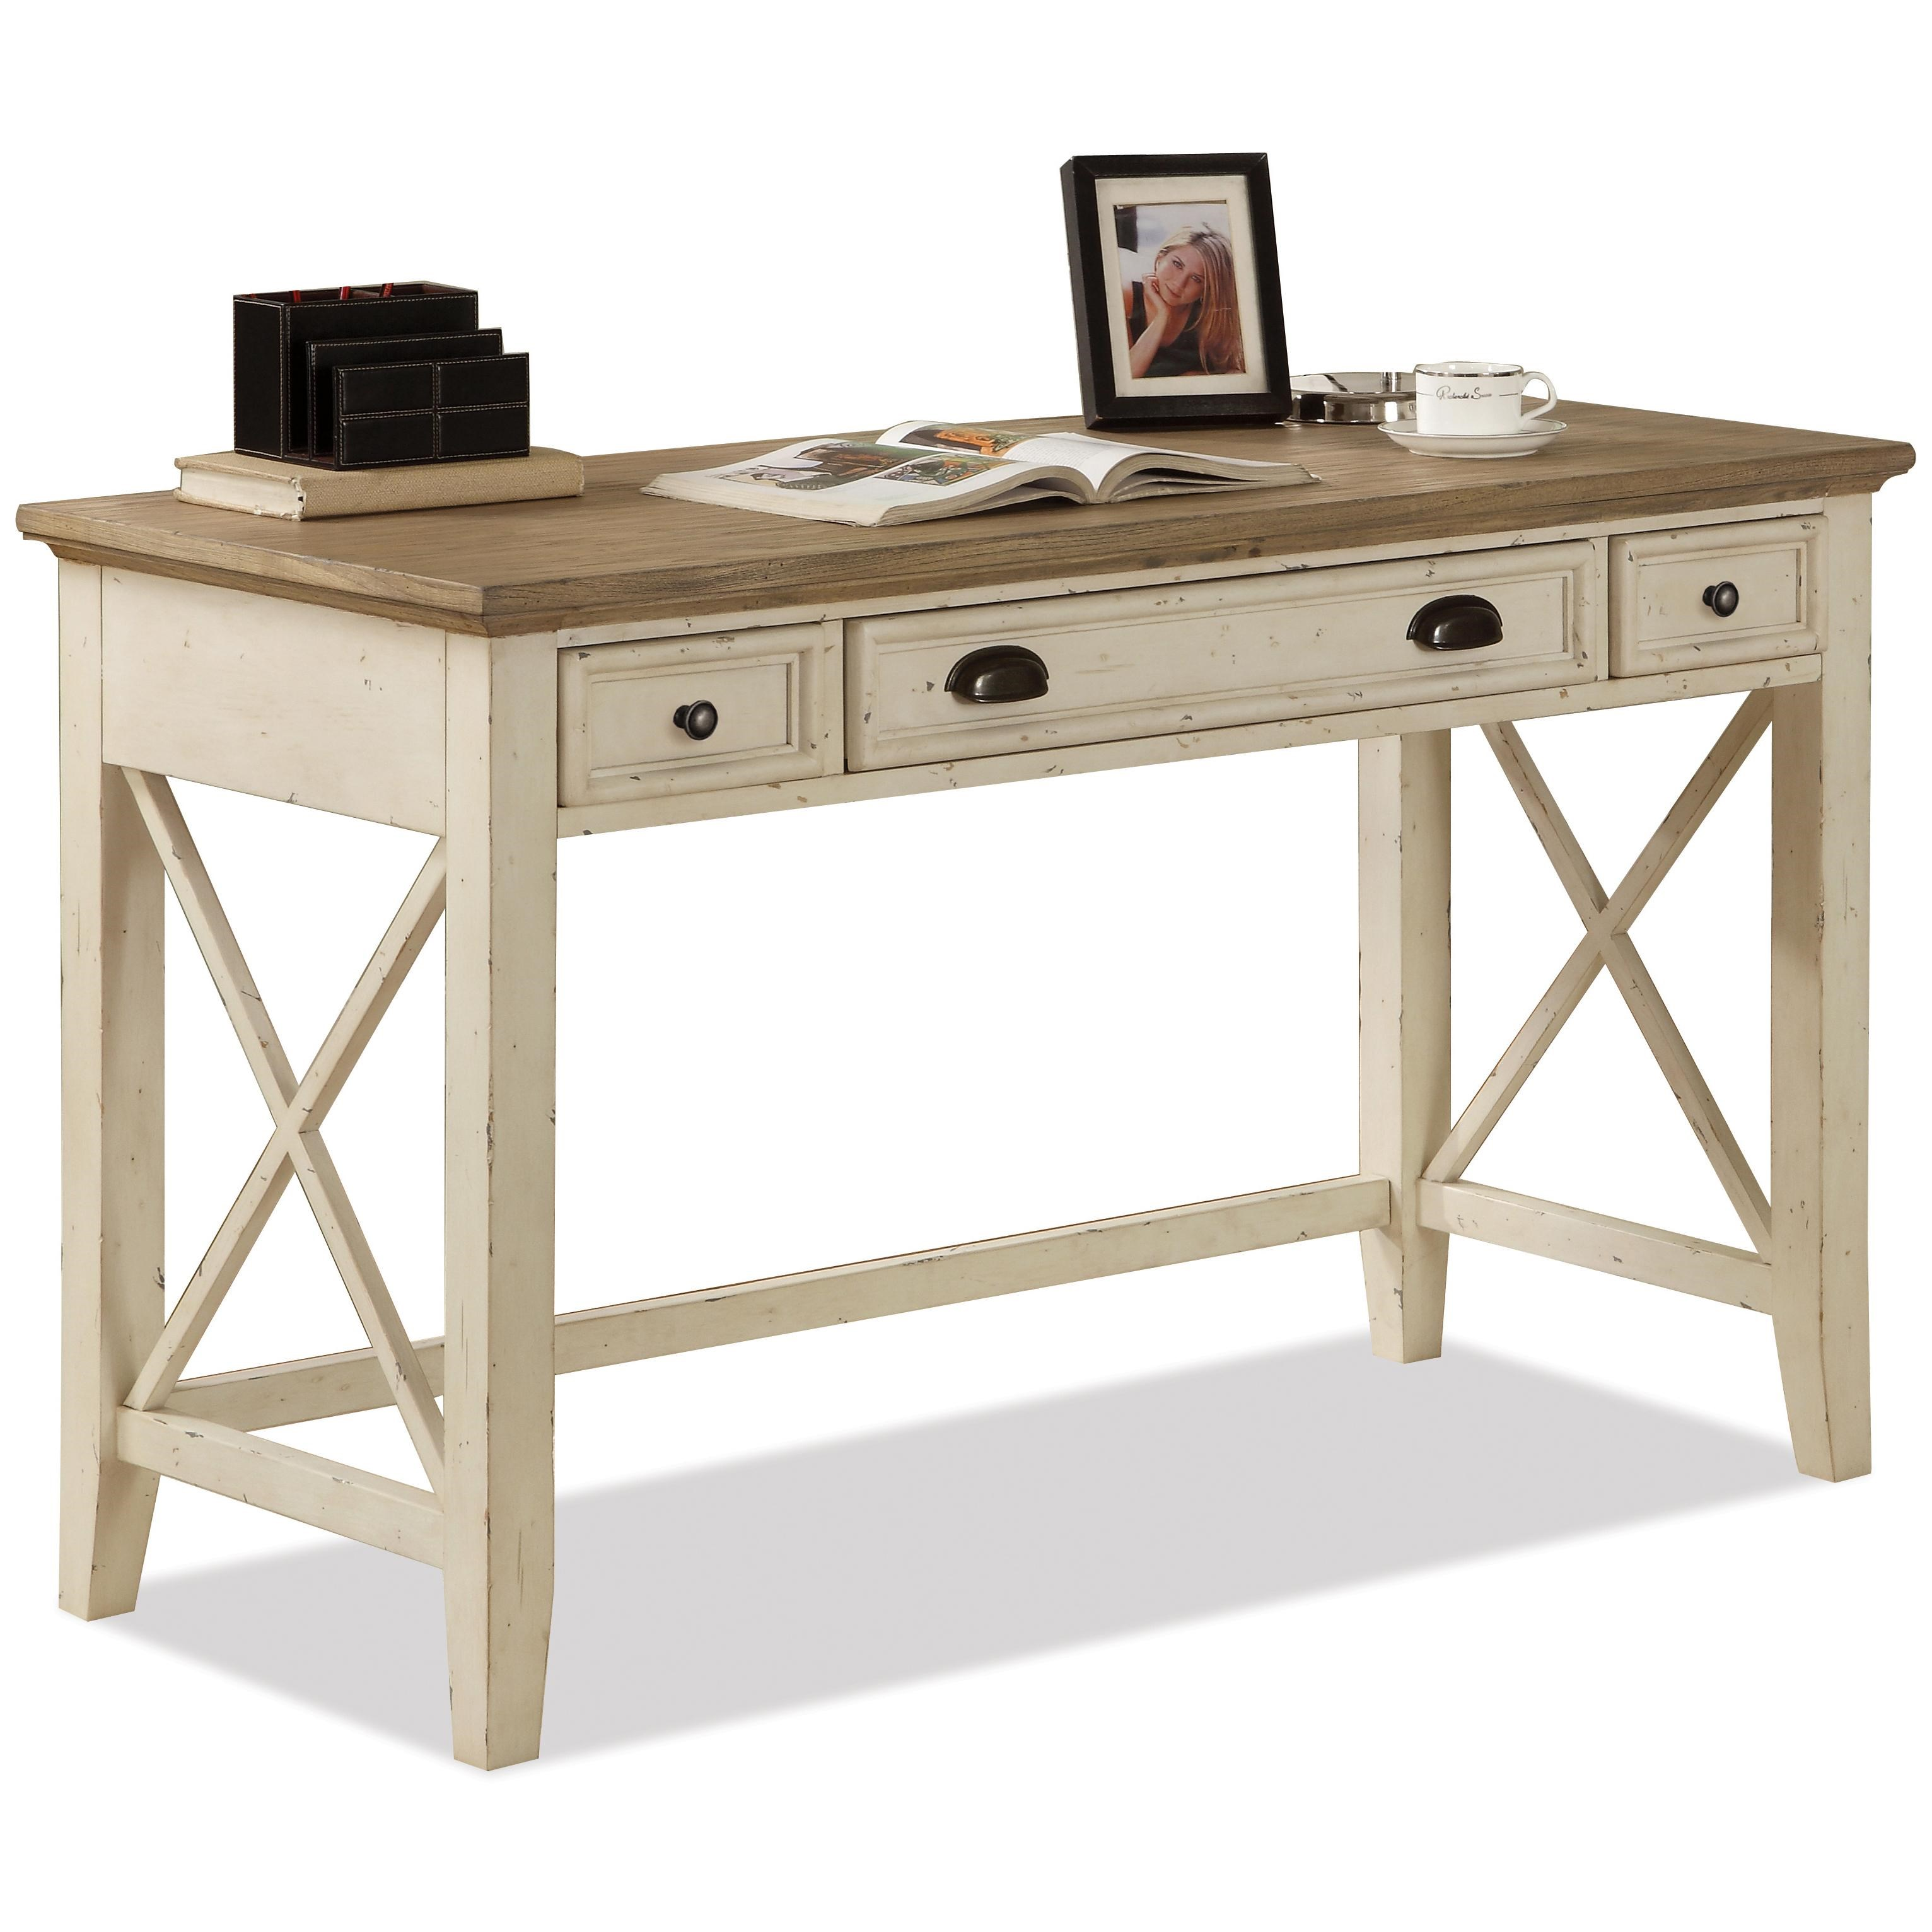 Charmant Riverside Furniture Coventry Two Tone Writing Desk With 3 Drawers U0026 Outlet  Powerbar